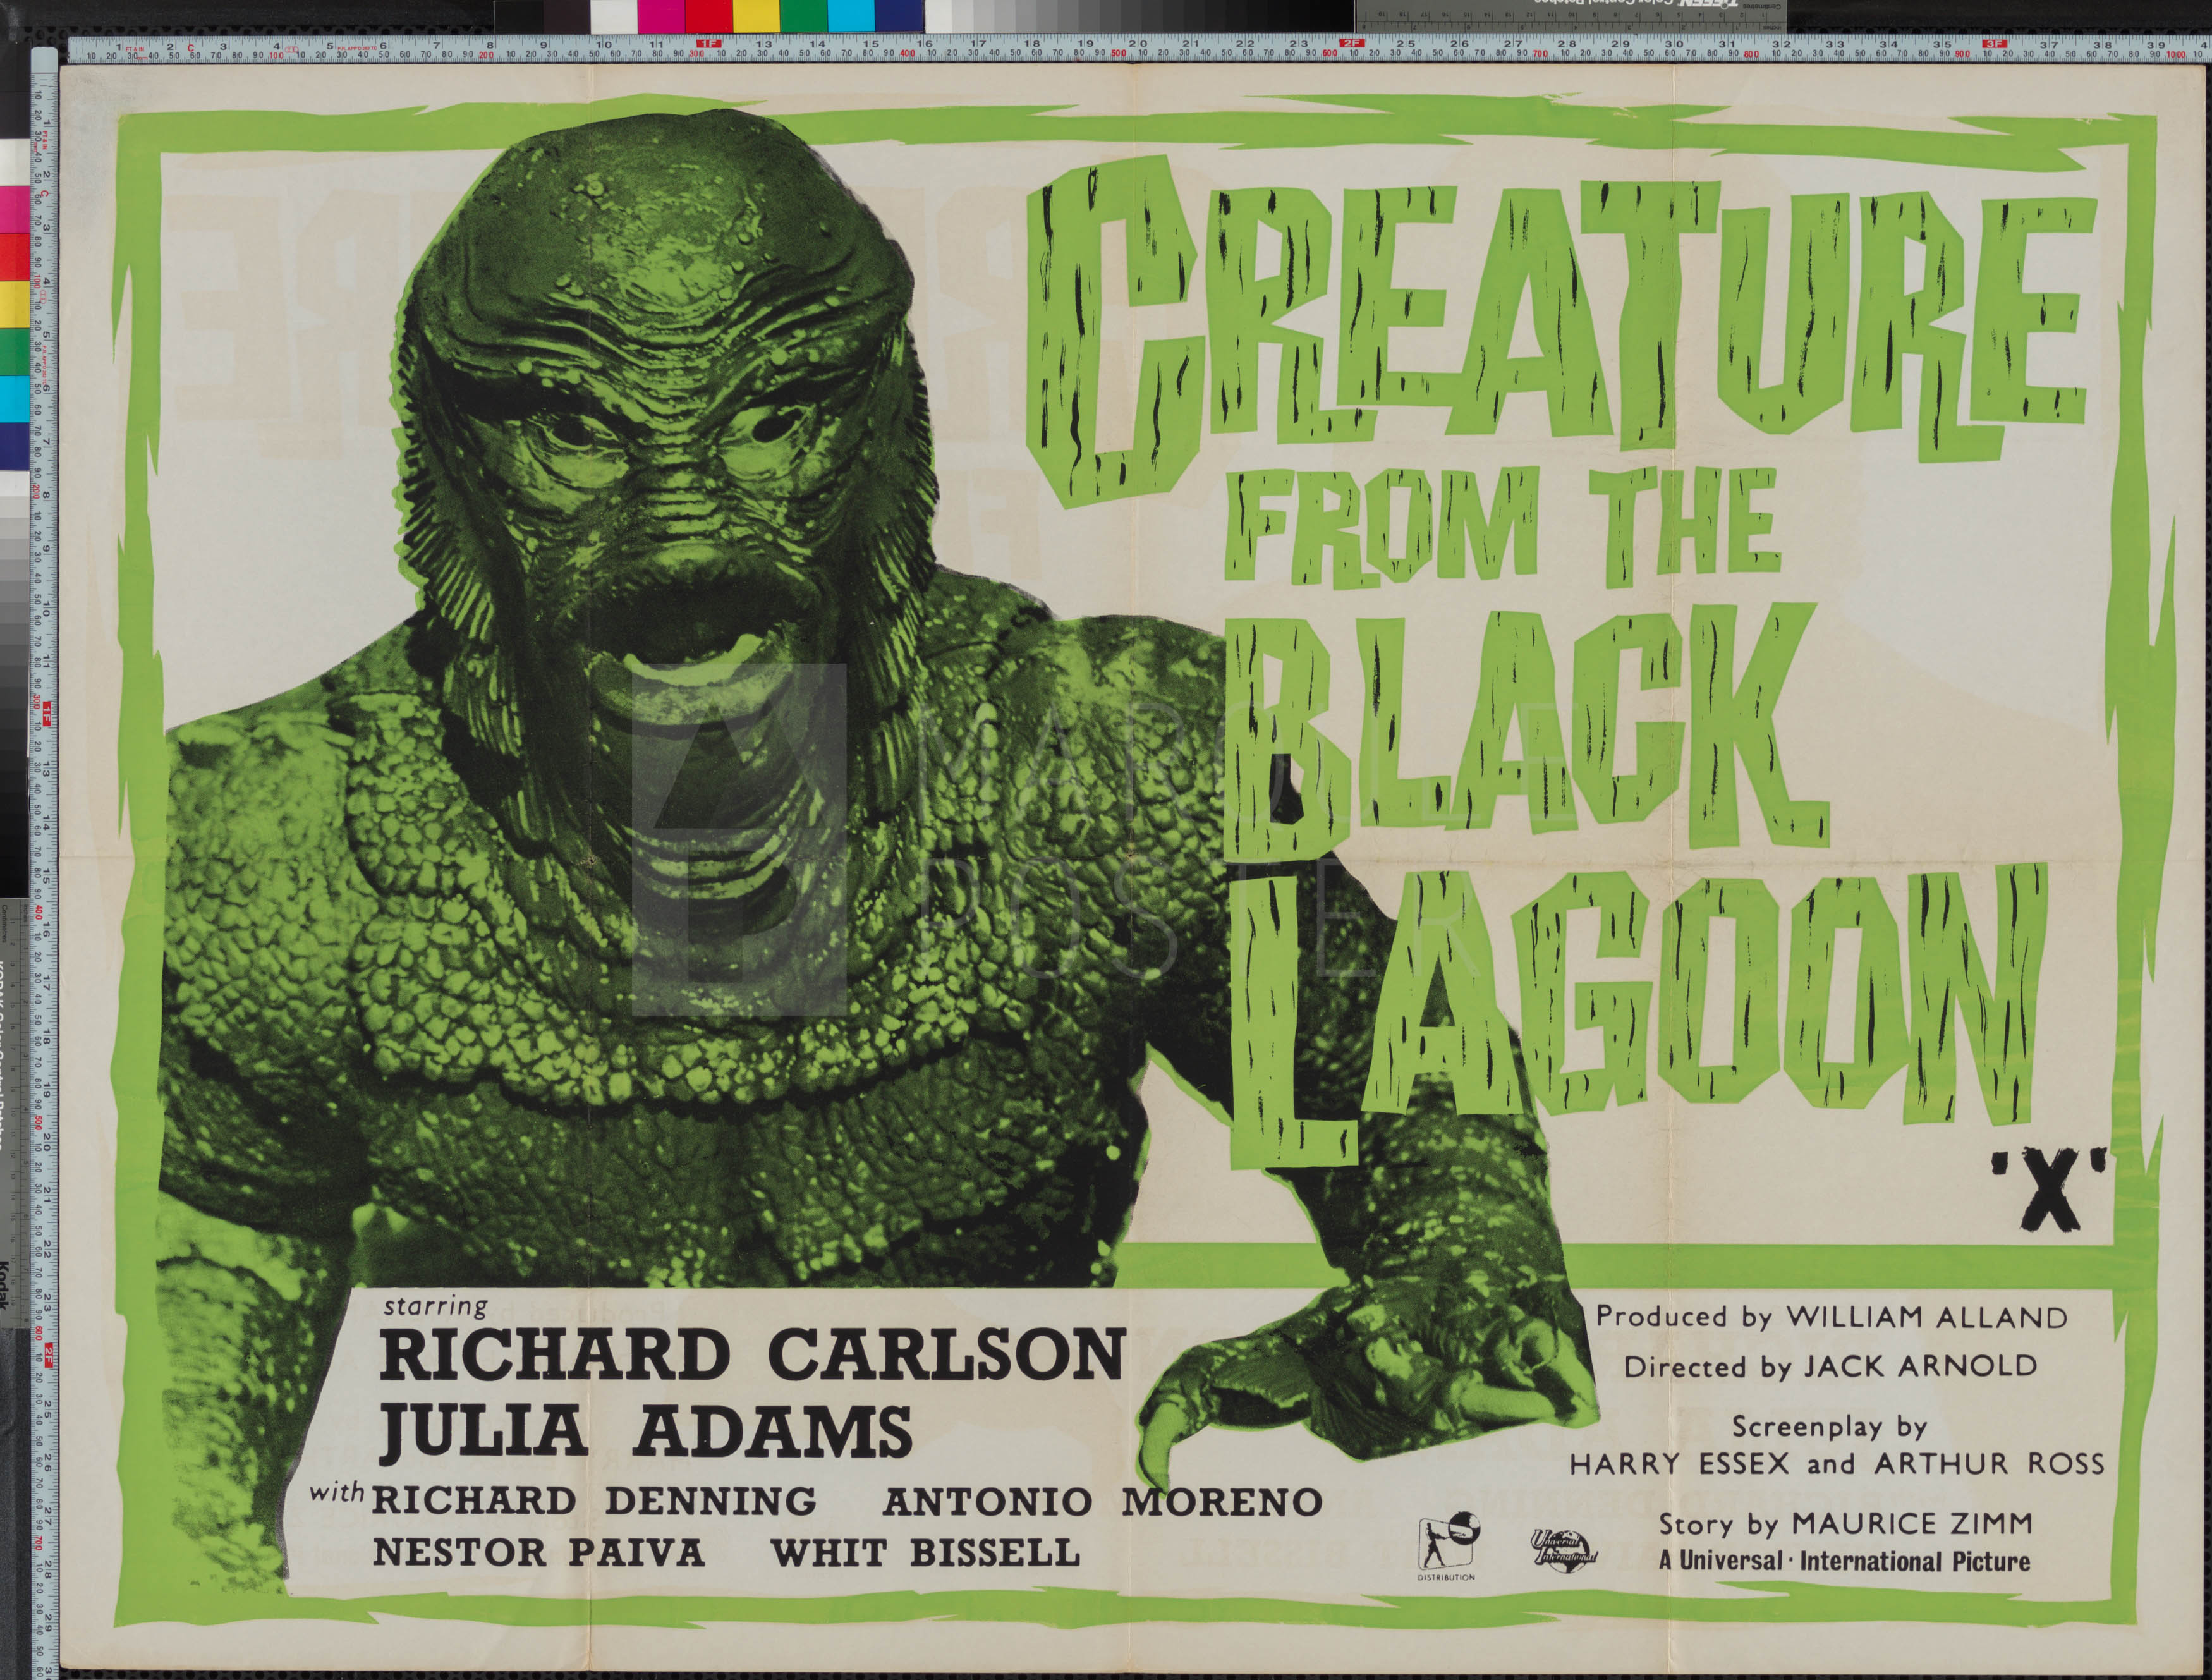 12-creature-from-the-black-lagoon-re-release-uk-quad-1960s-02